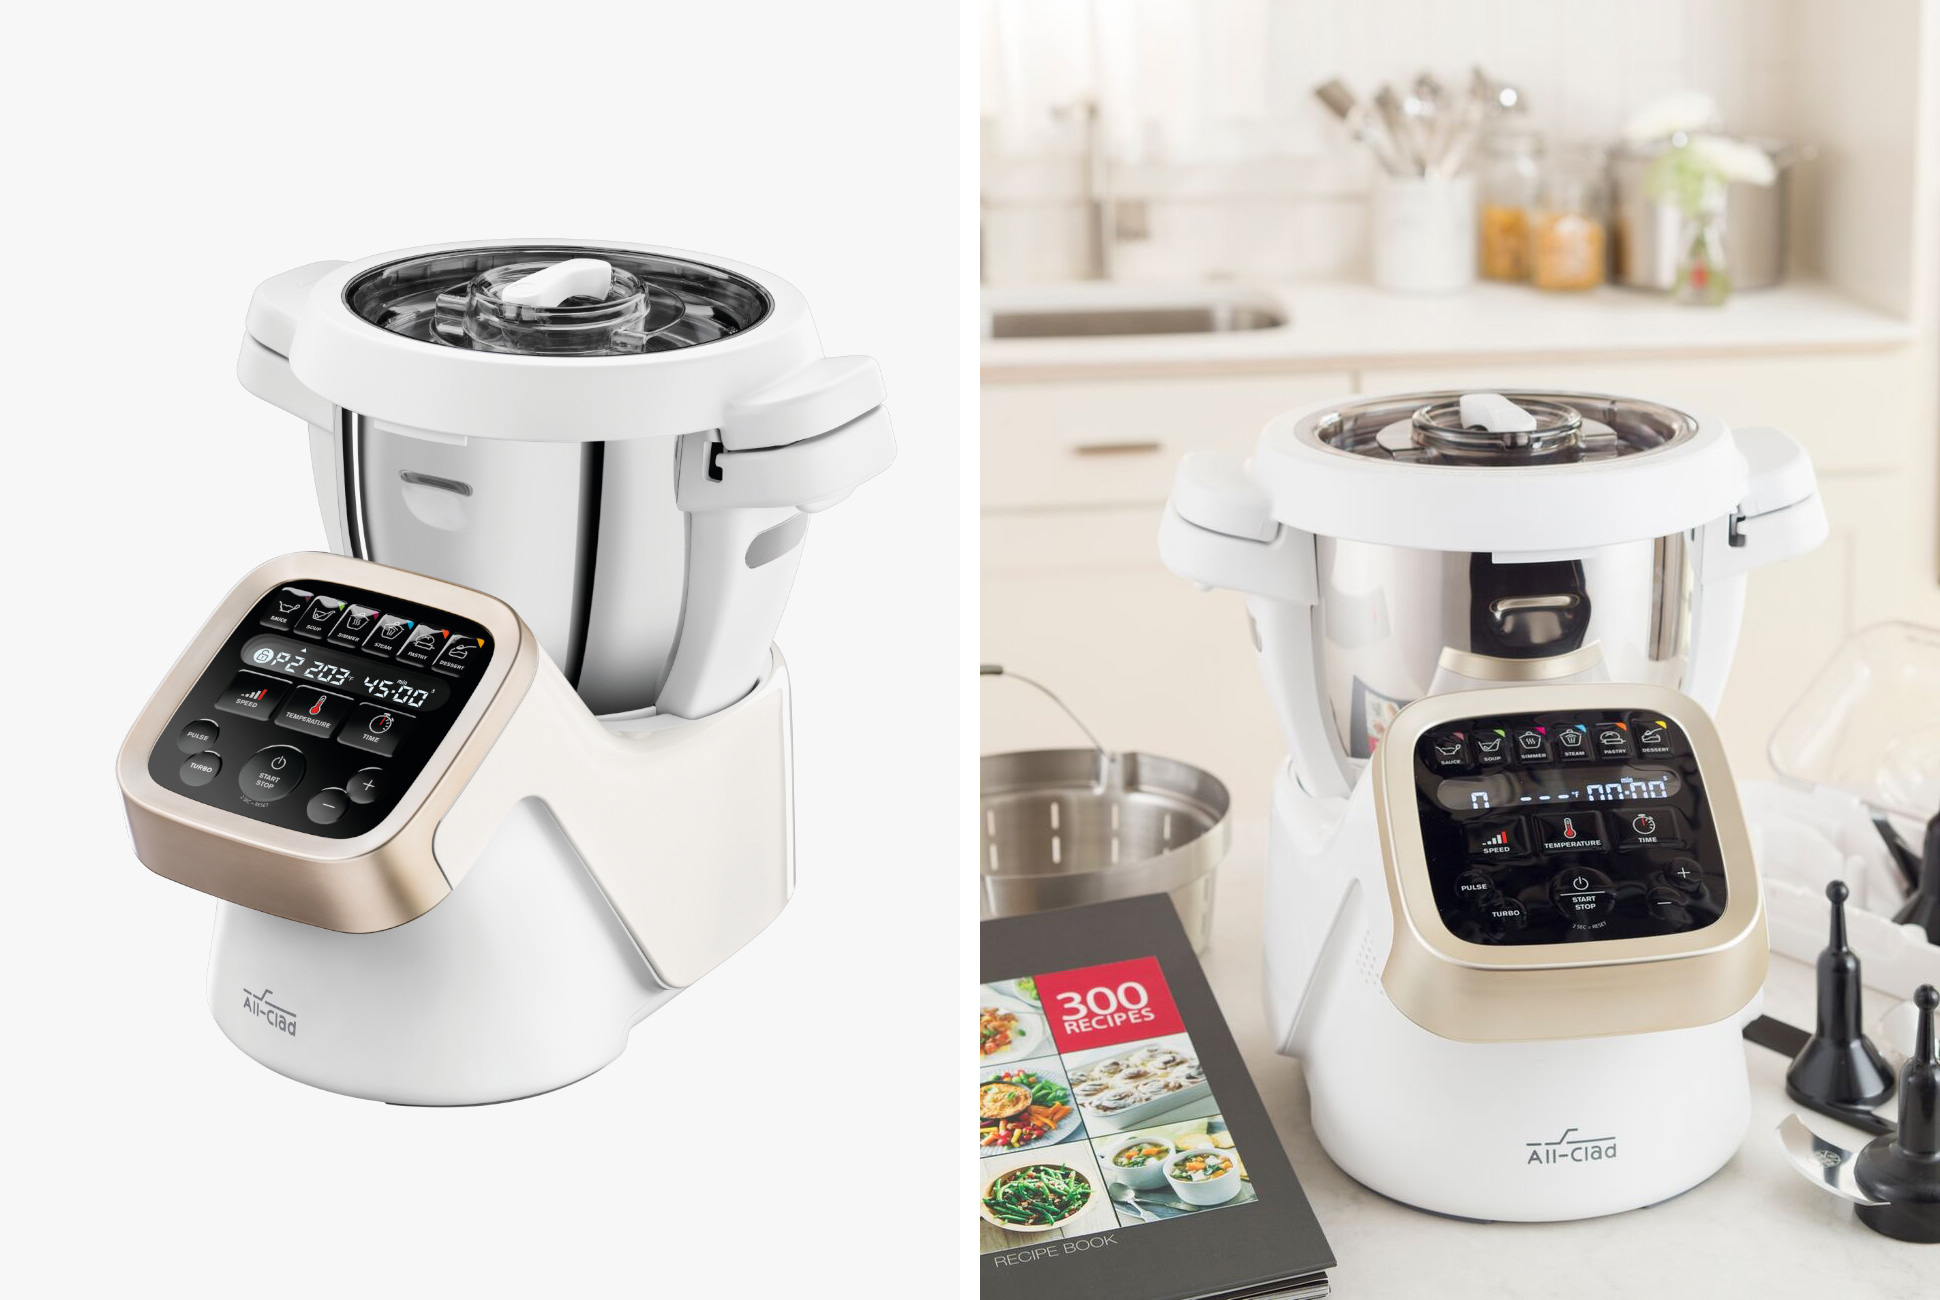 All-Clad Prep and Cook - combines mixing, chopping, simmering, steaming into one device